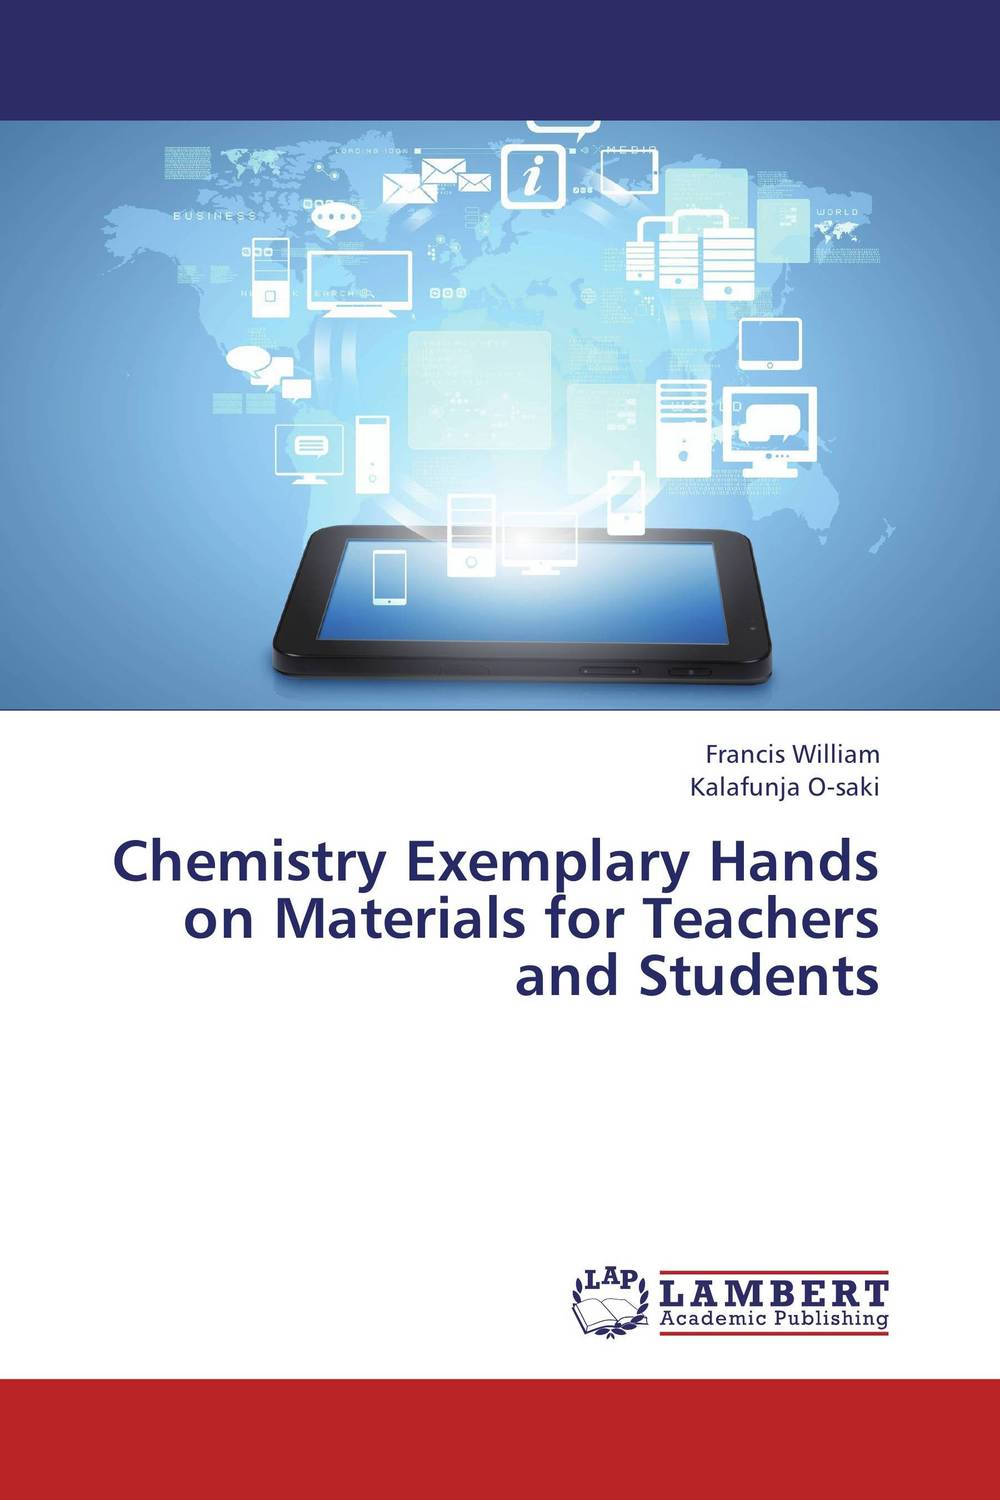 Chemistry Exemplary Hands on Materials for Teachers and Students н а степанова практический курс английского языка для студентов химиков about the foundations of chemistry a practical course of english for the first year chemistry students